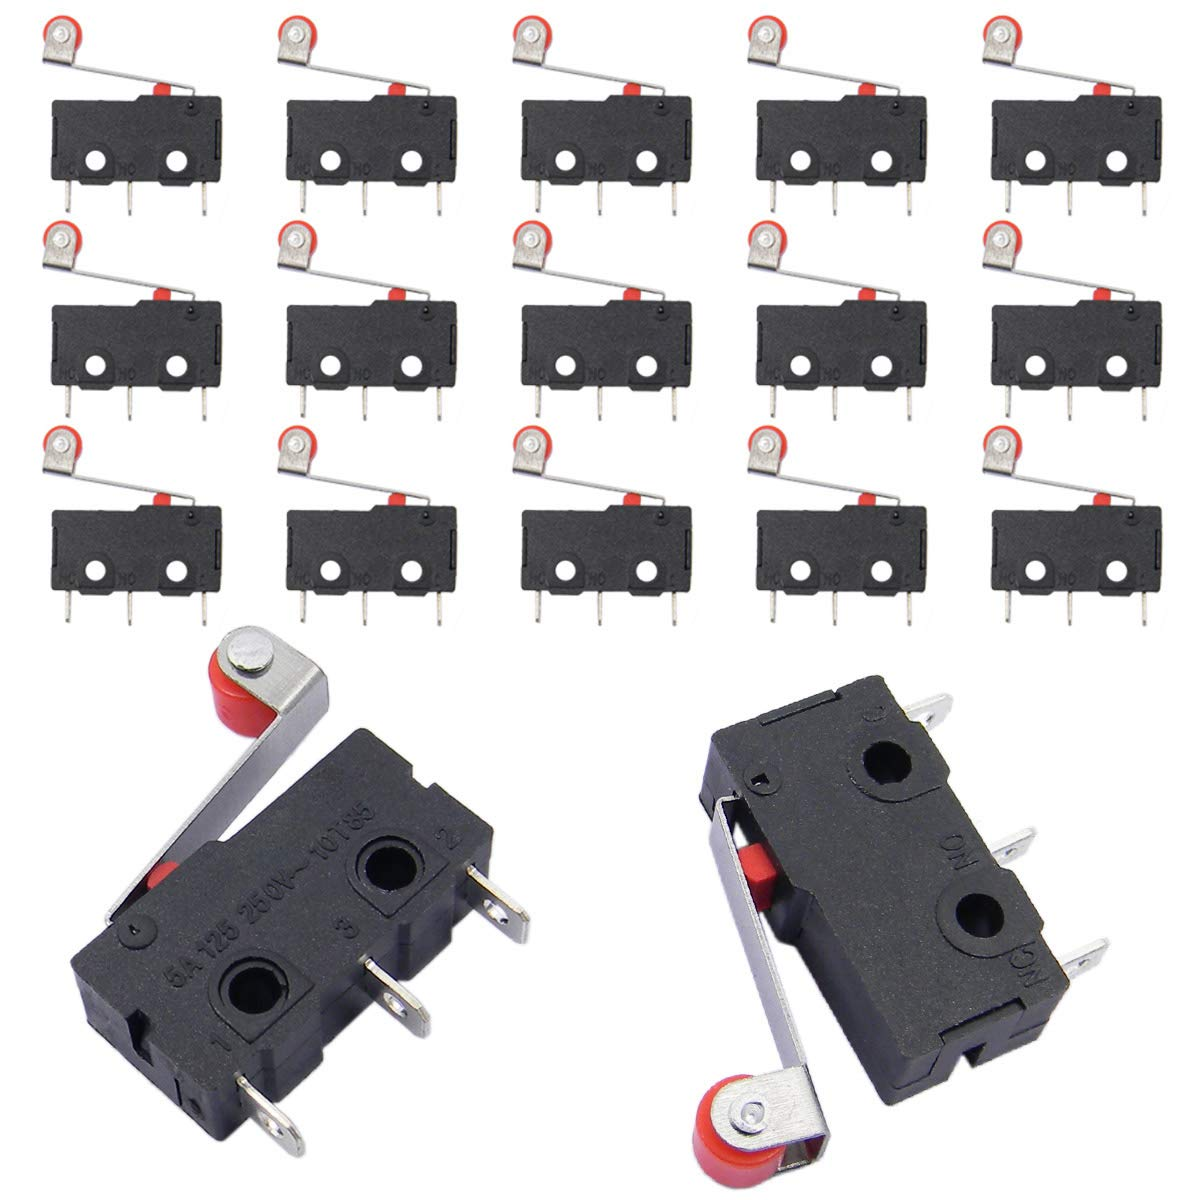 QY 15PCS Hinge Roller Lever Micro Limit Switch Lever Arm SPDT Snap Action 5A 125 250VAC 3 Terminals Momentary Travel Switch